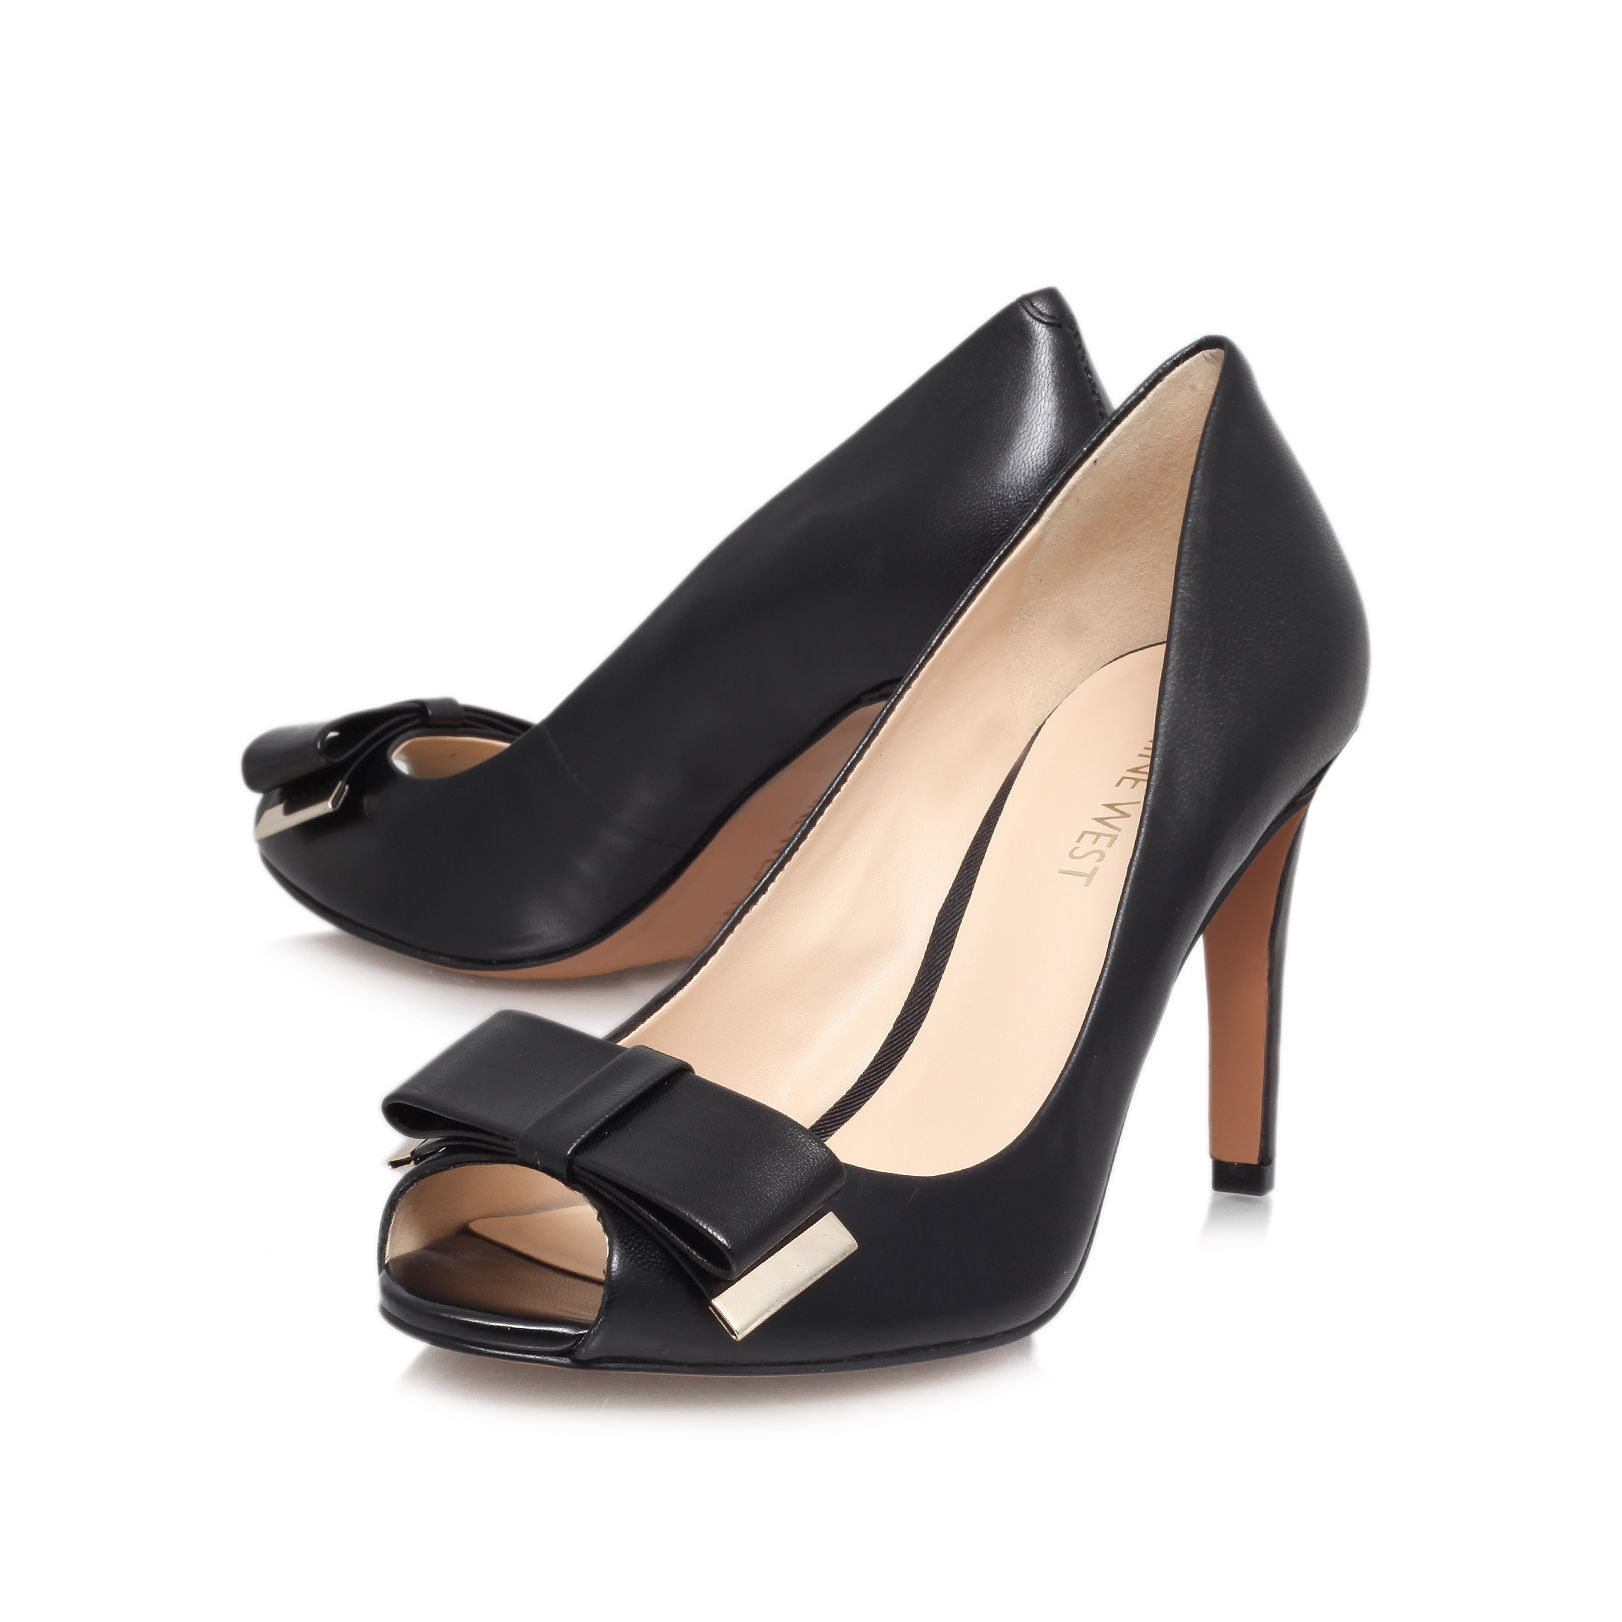 Dhara high heeled court shoes